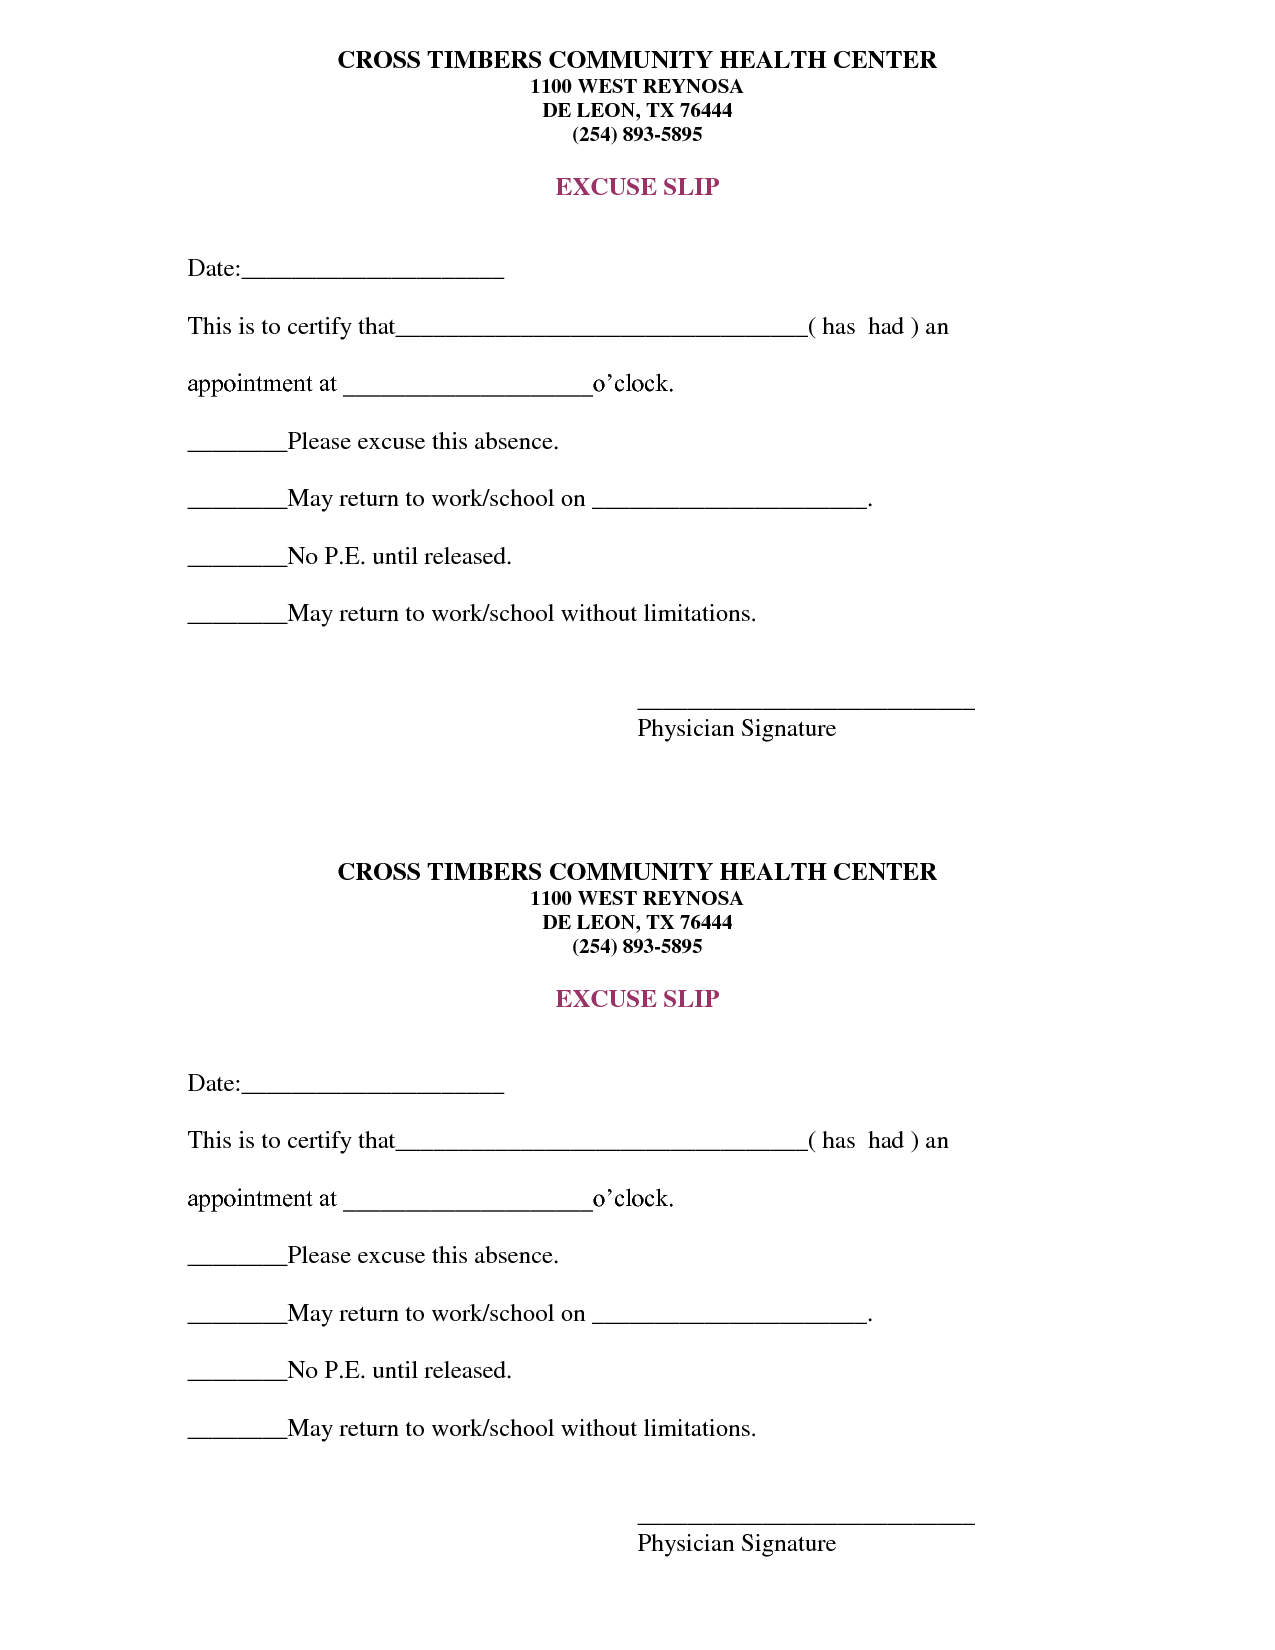 Free Doctors Note Template | Scope Of Work Template | On The Run - Free Printable Doctors Note For Work